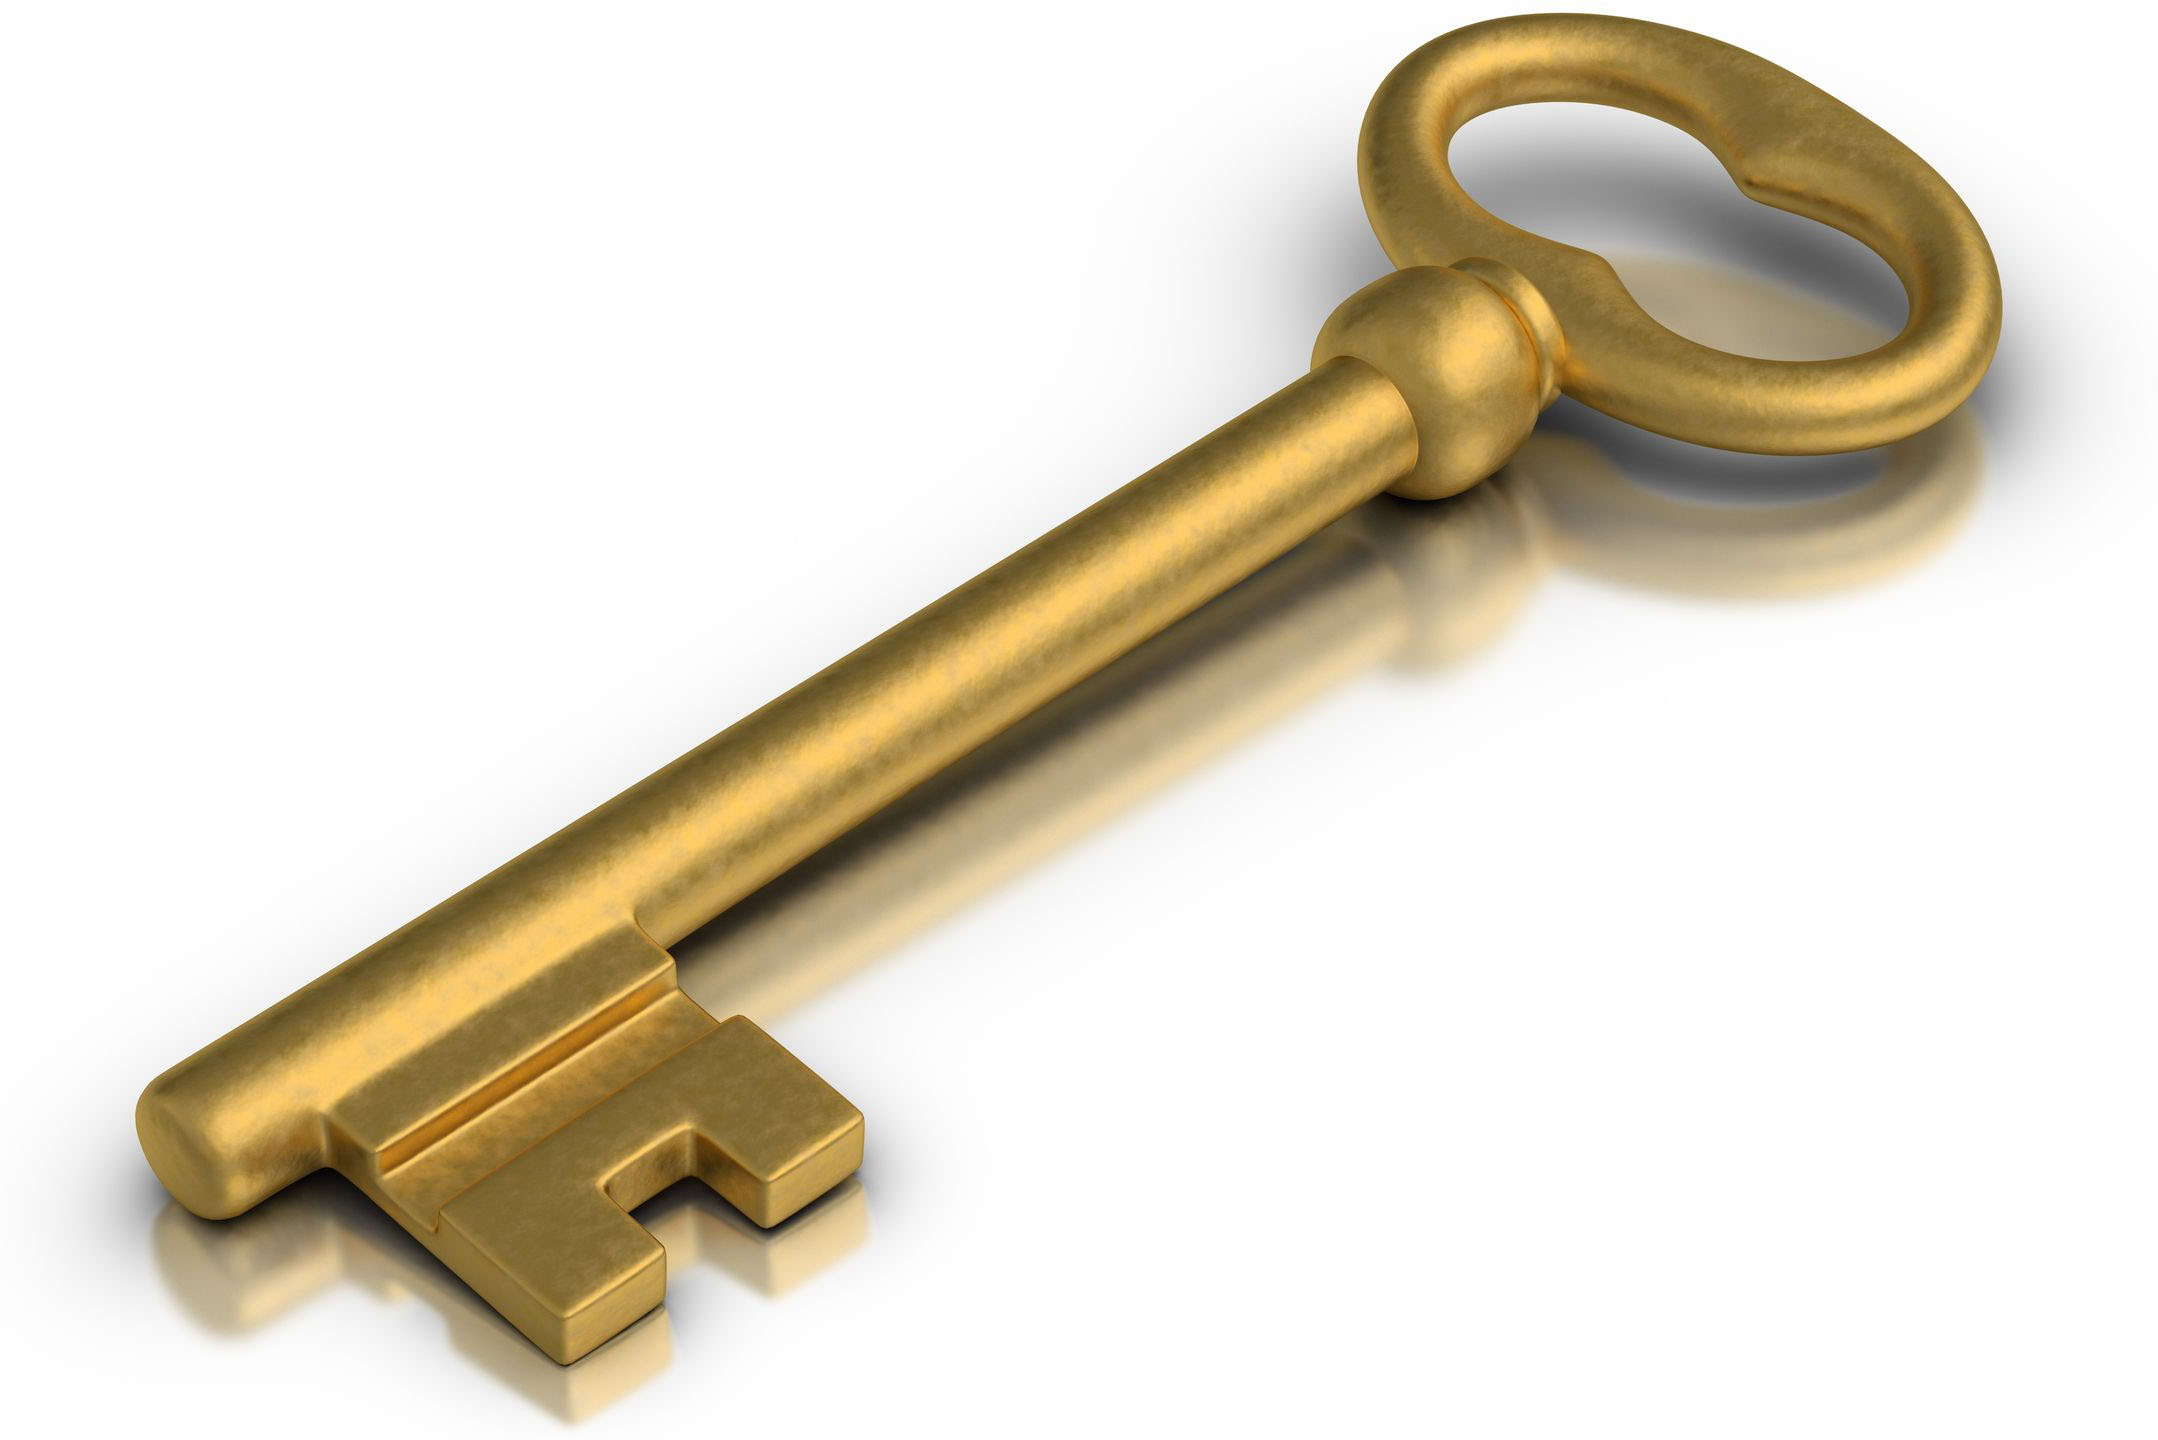 BIG Golden Key - LIBERTY (SECURITY PRIVACY SAFETY) FREE WILL